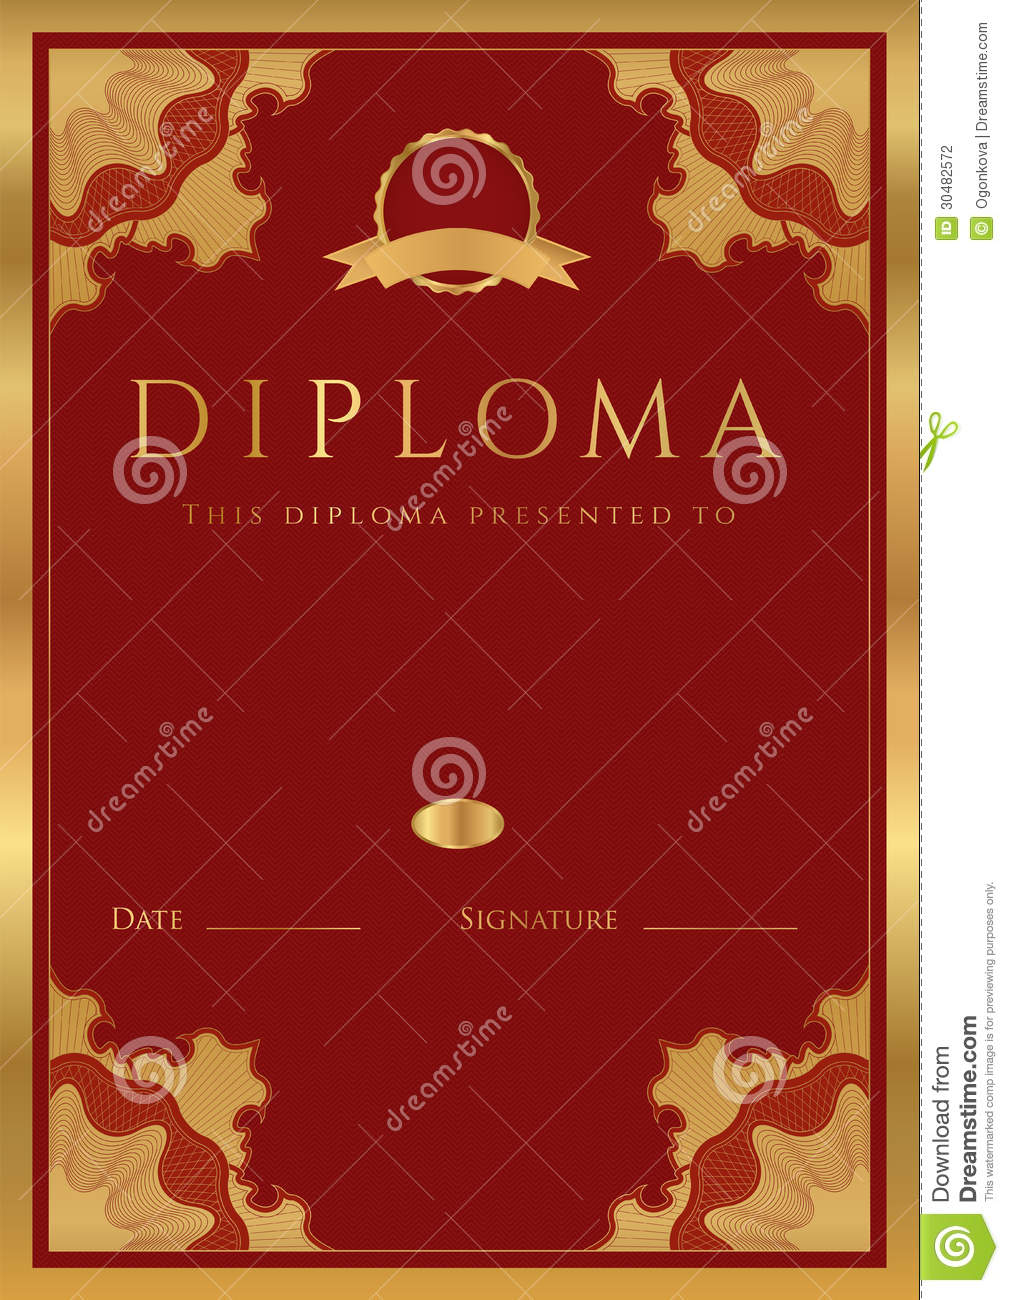 red diploma    certificate background with border stock